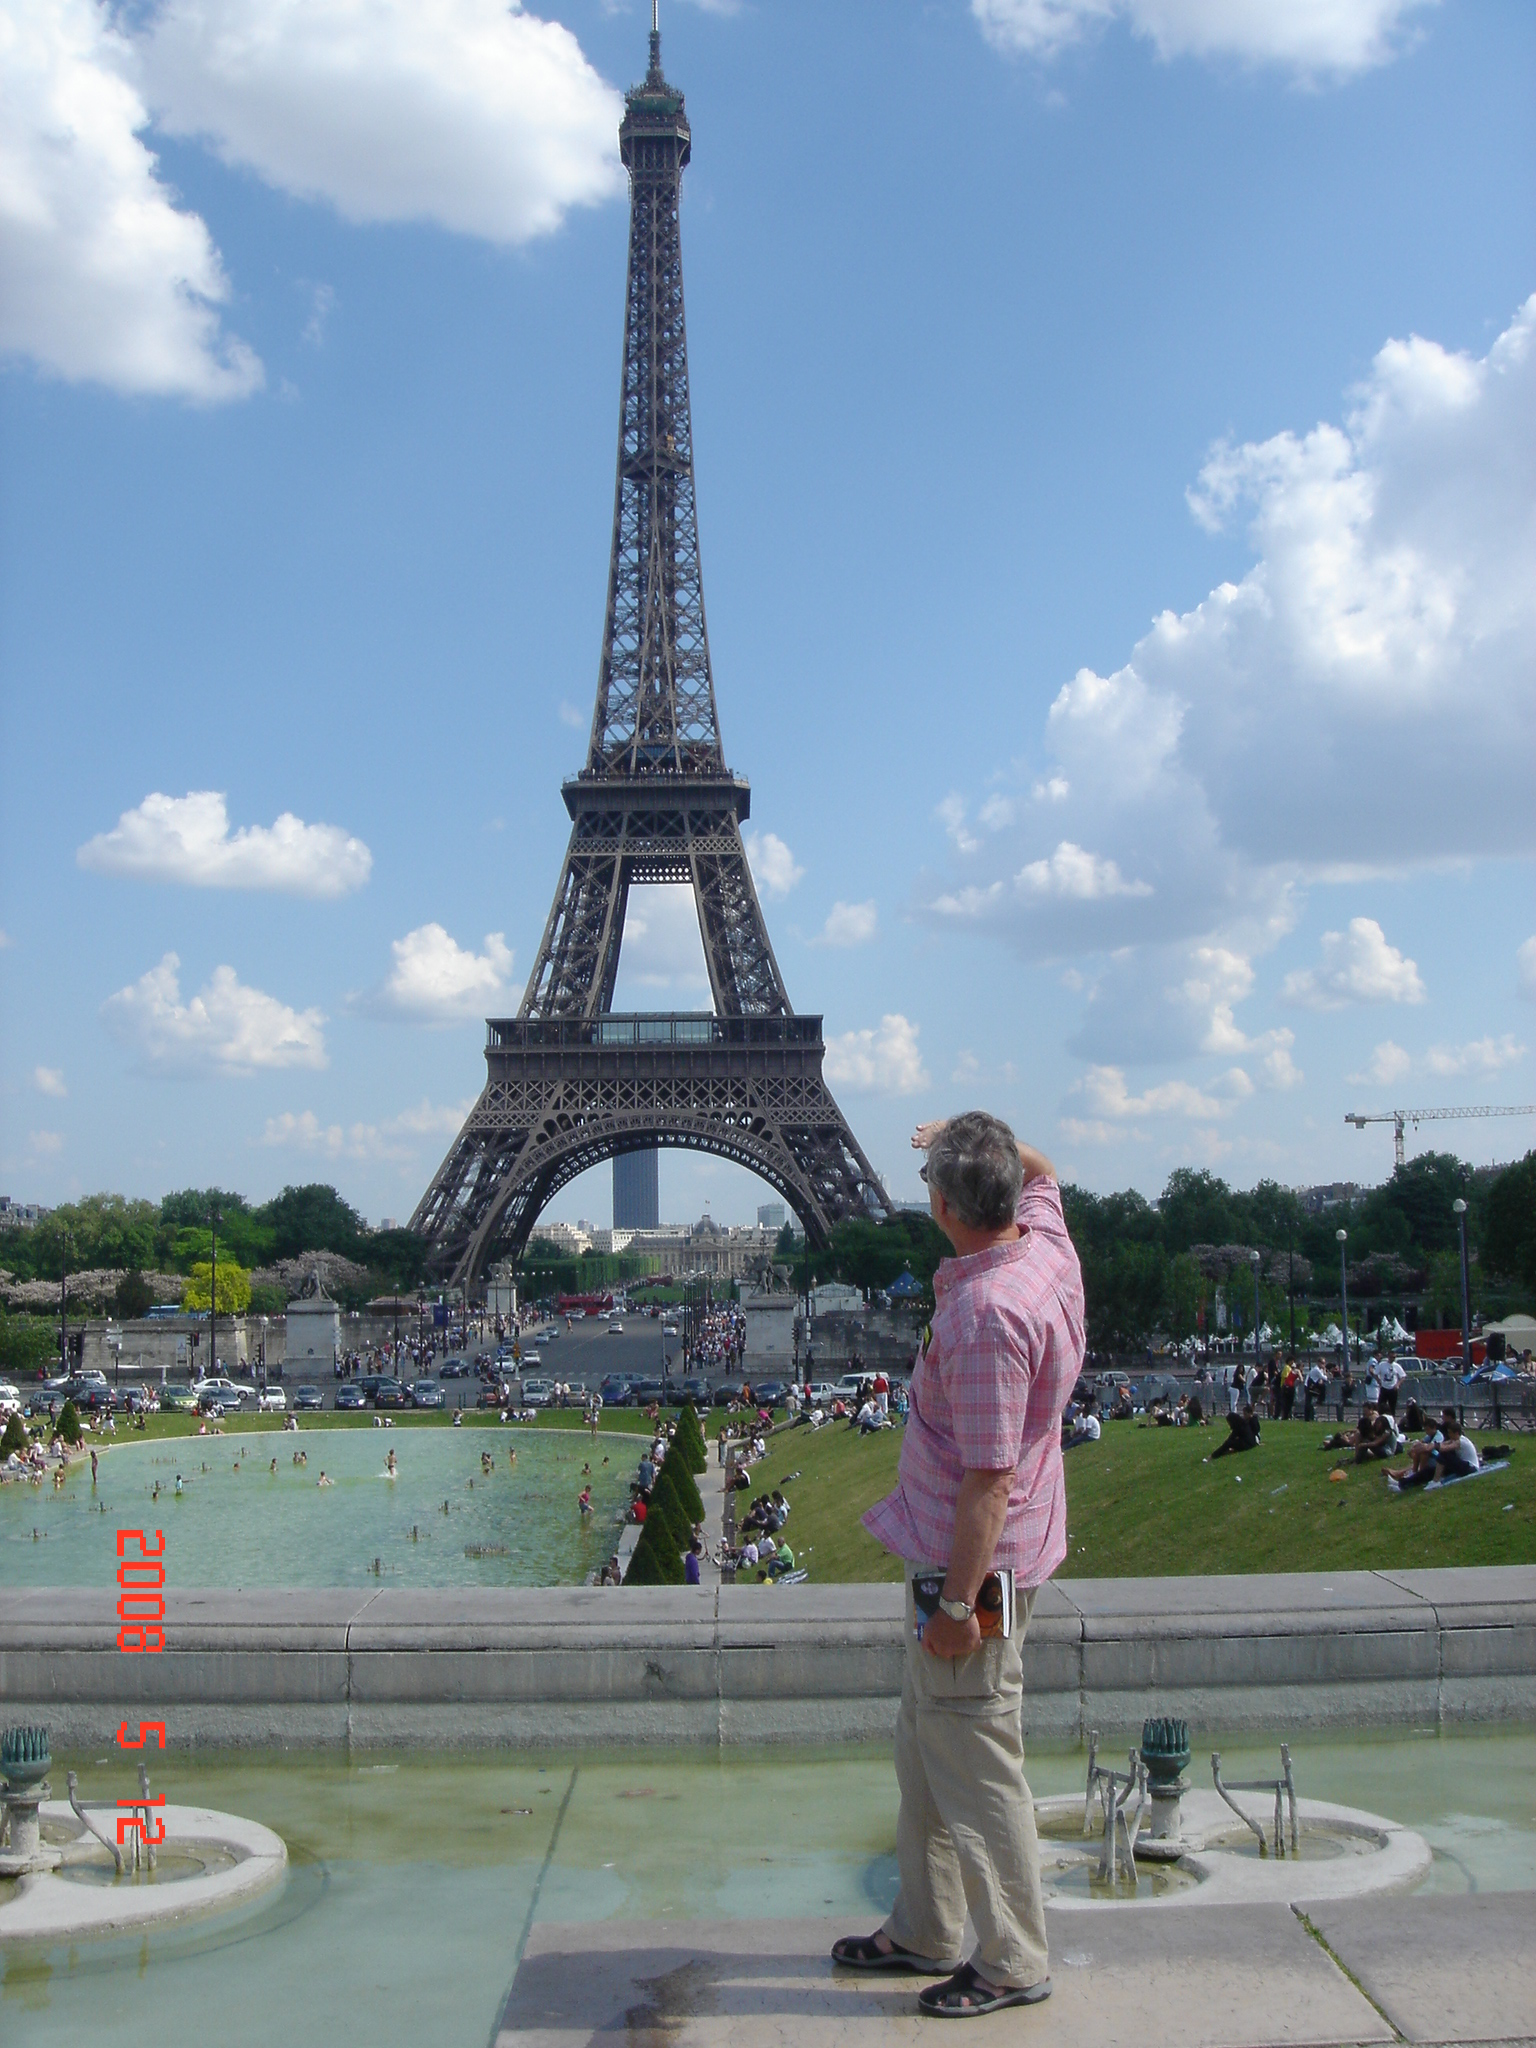 TRAVEL MEMEORIES OF THE TROCADERO AND EIFFEL TOWER